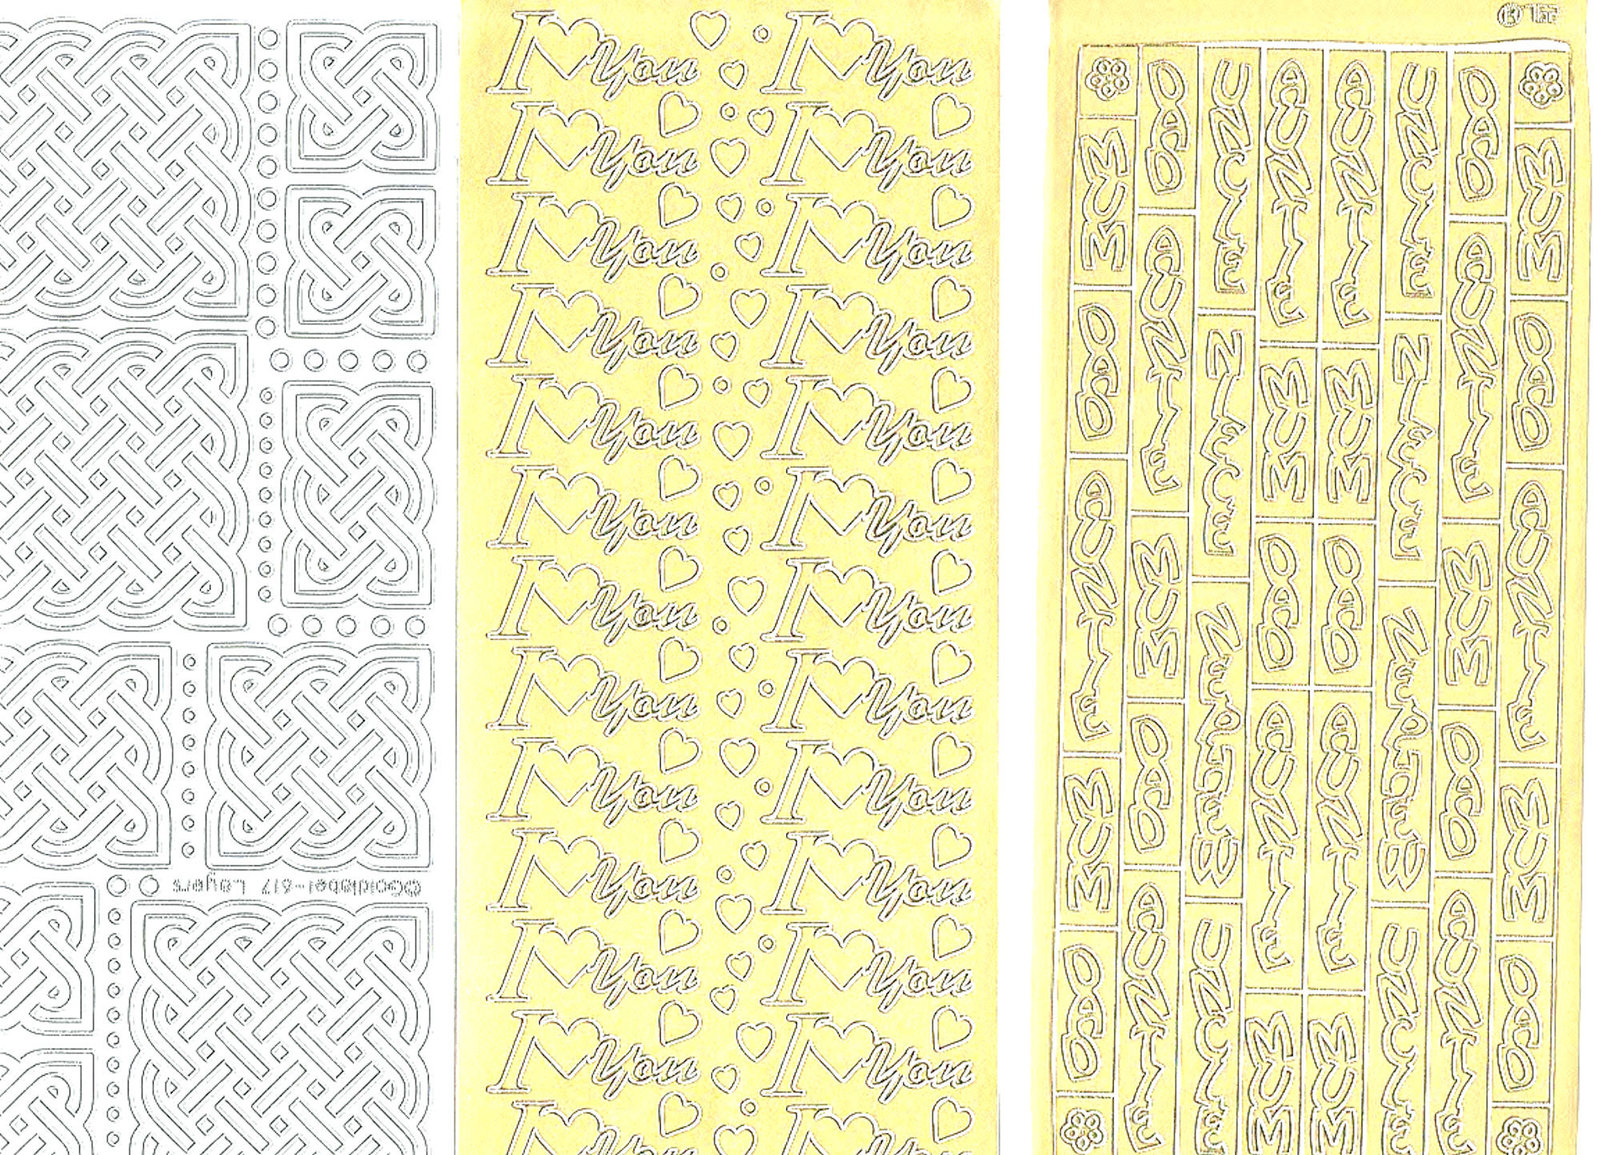 3 x sheets of peel off stickers 2 gold 1 silver  ideal cards, papercraft, displa